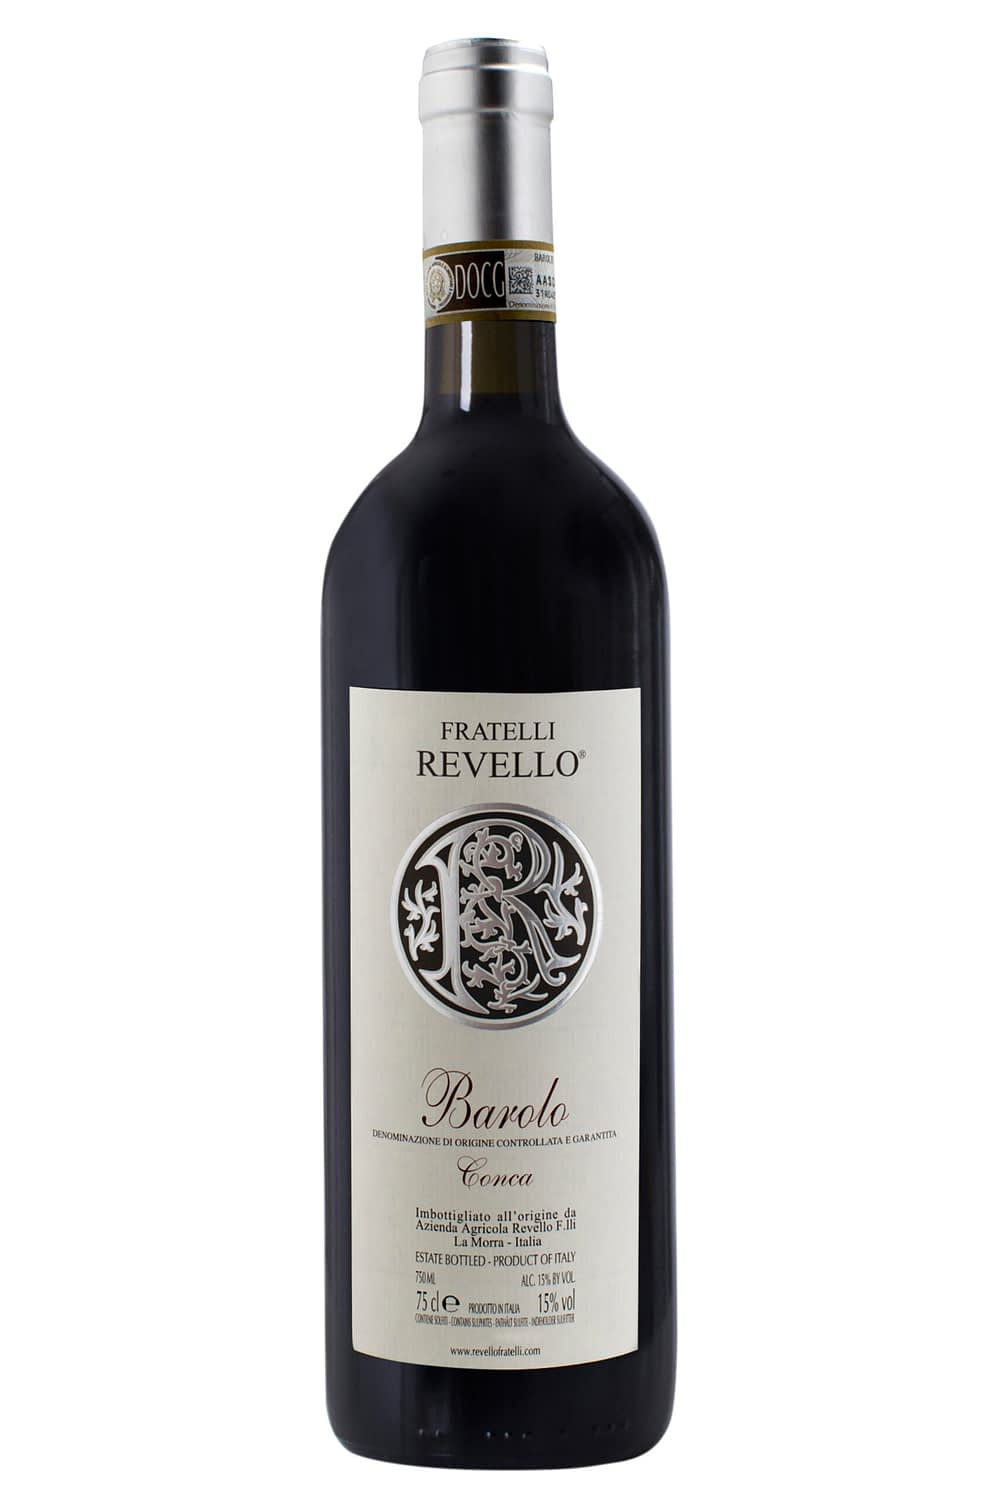 Revello Barolo Conca 2009 - only 1 bottle left!